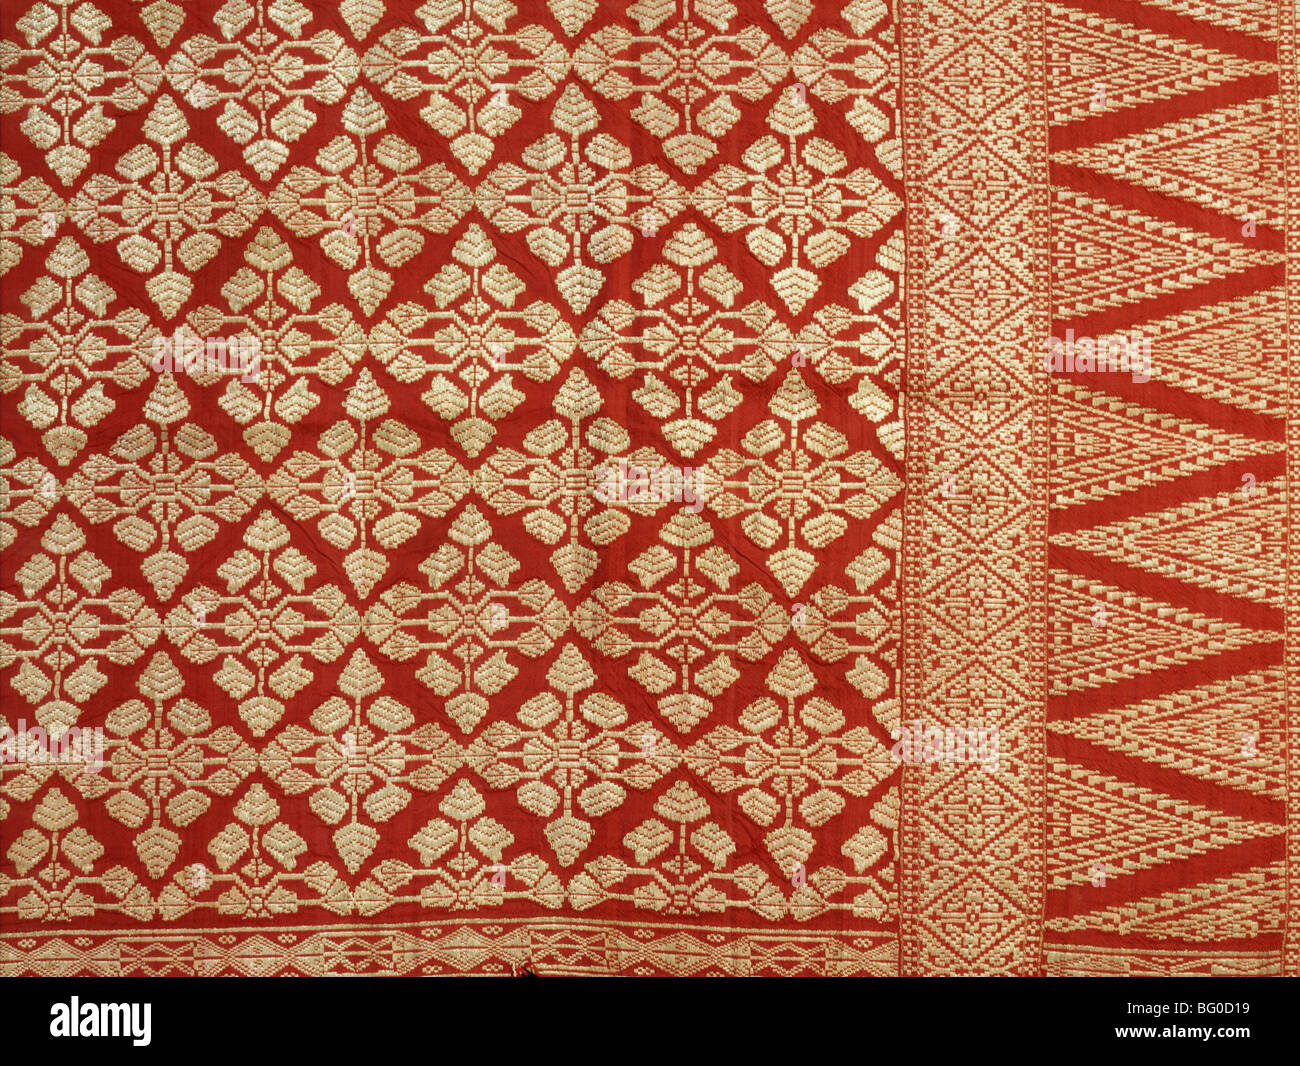 Gold-thread emboidered textile of Malaysia, Southeast Asia, Asia - Stock Image